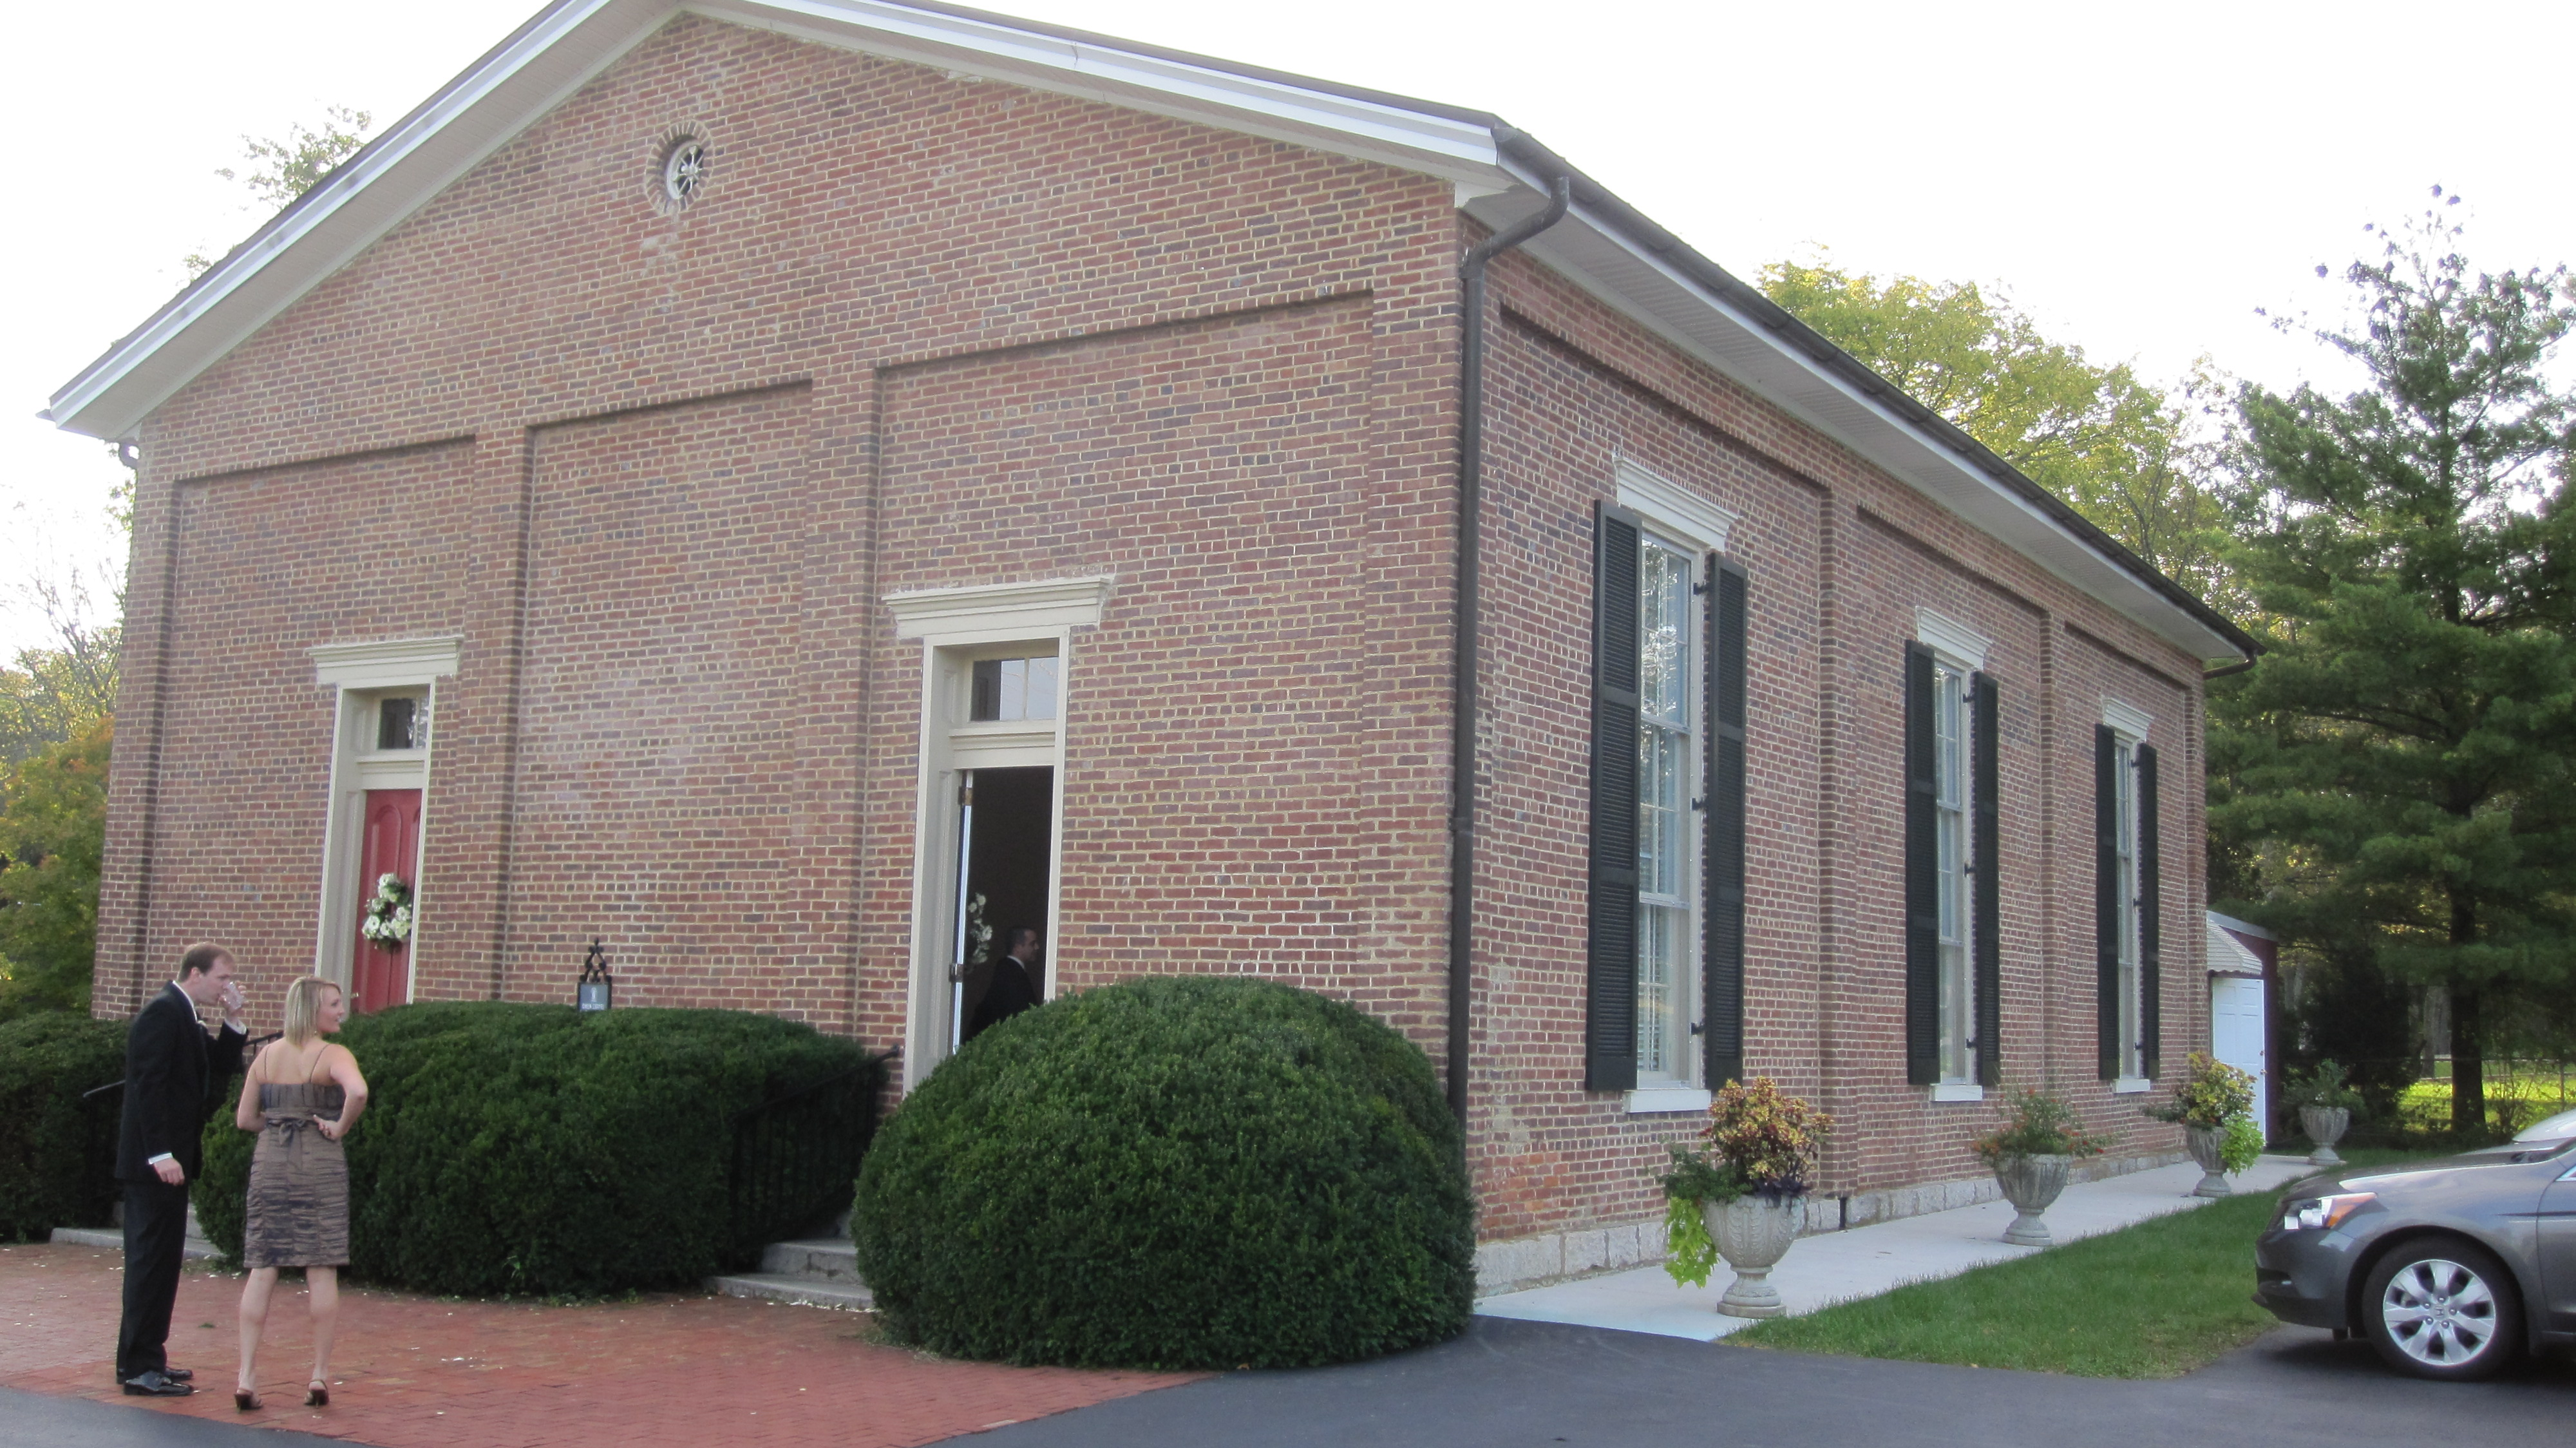 Owens Chapel In Bwood Tennessee